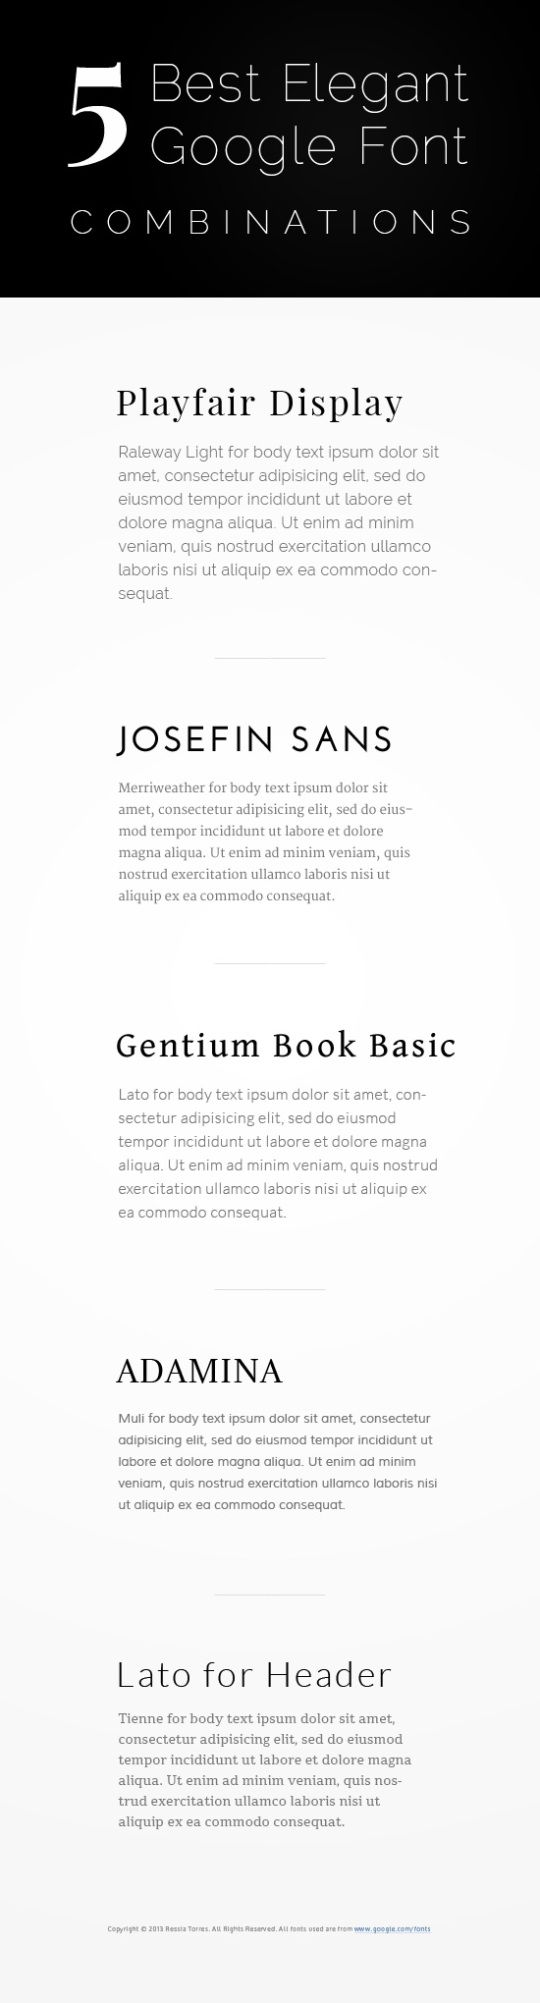 5 Best Elegant Google Font Combinations